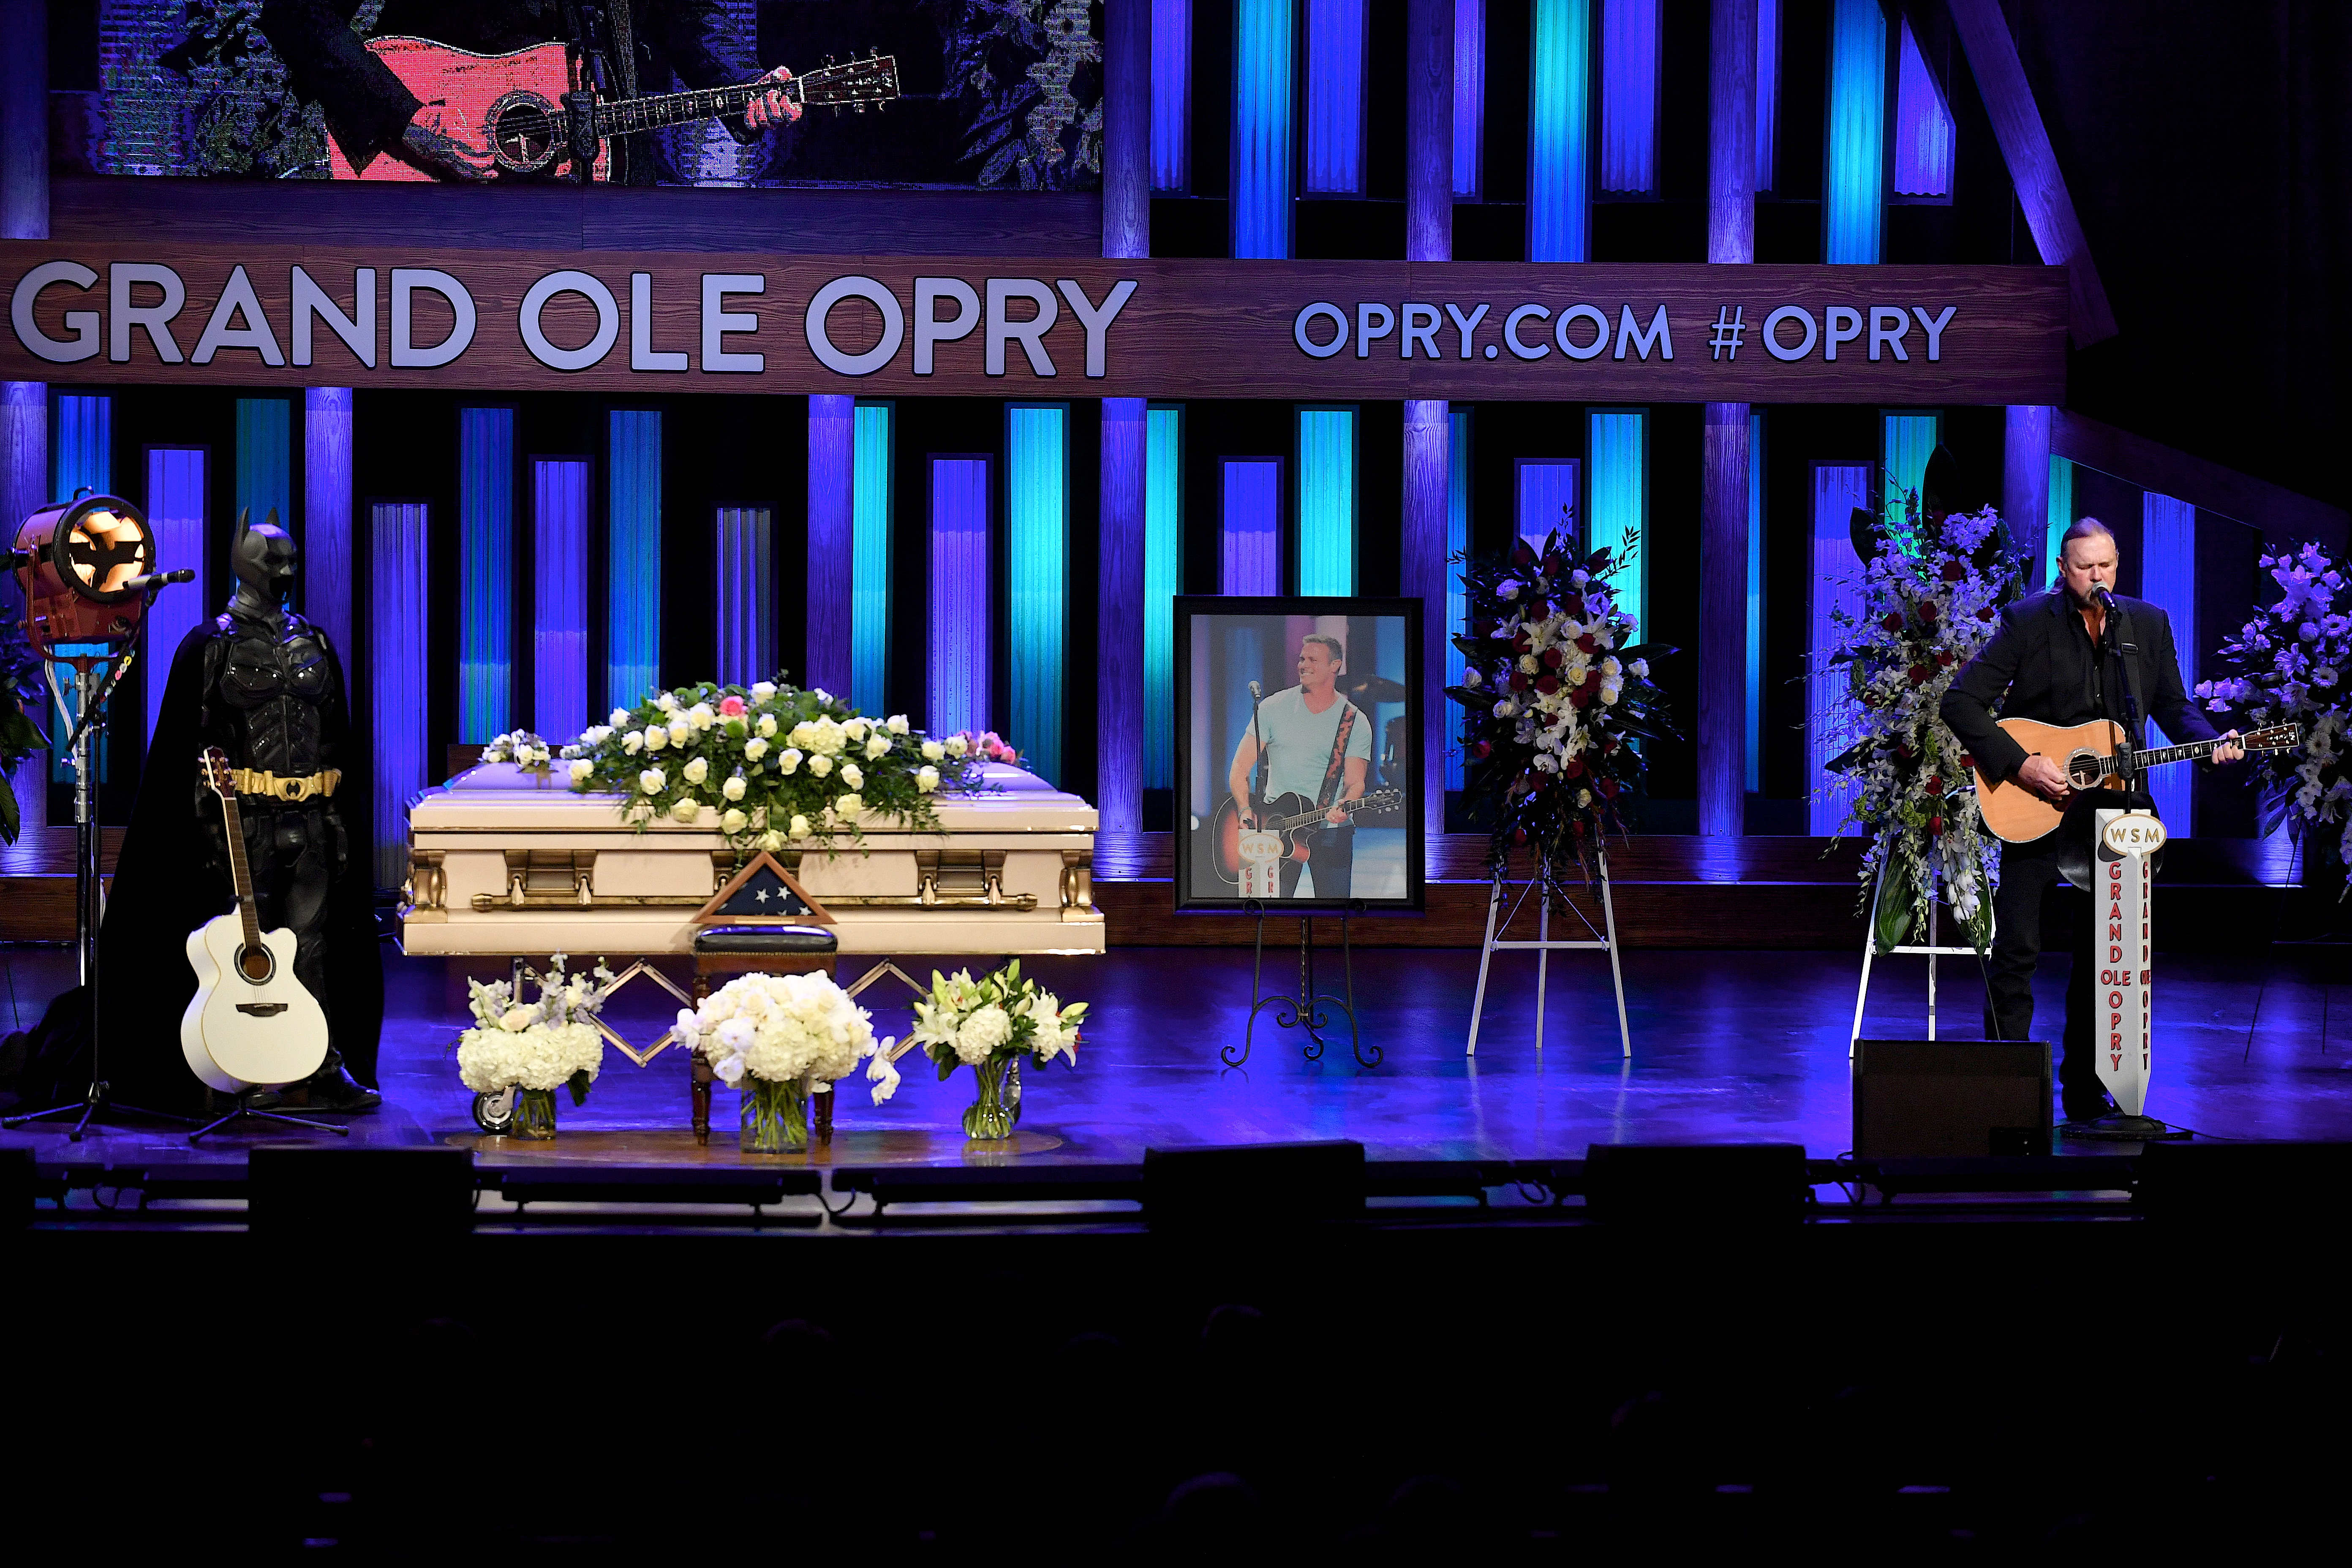 Recording Artist Trace Adkins performs during the Celebration Of Life For Troy Gentry at Grand Ole Opry House on September 14, 2017 in Nashville, Tennessee. (Photo by Jason Davis/Getty Images)